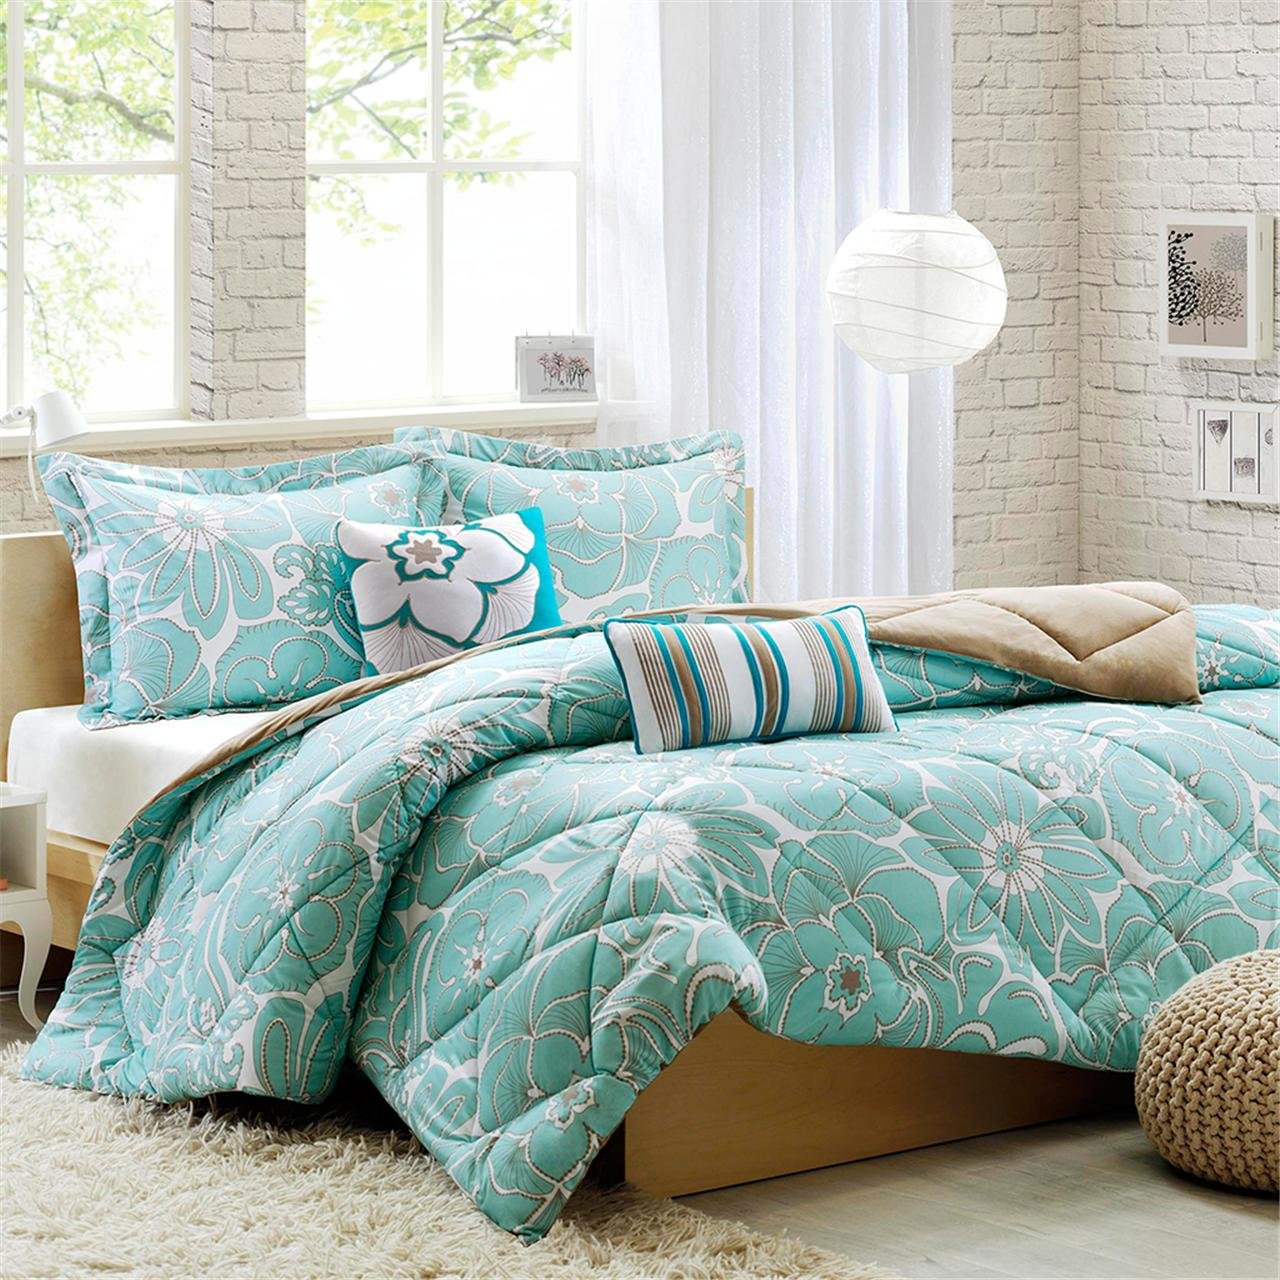 Intelligent Design Bedding Ease Bedding With Style